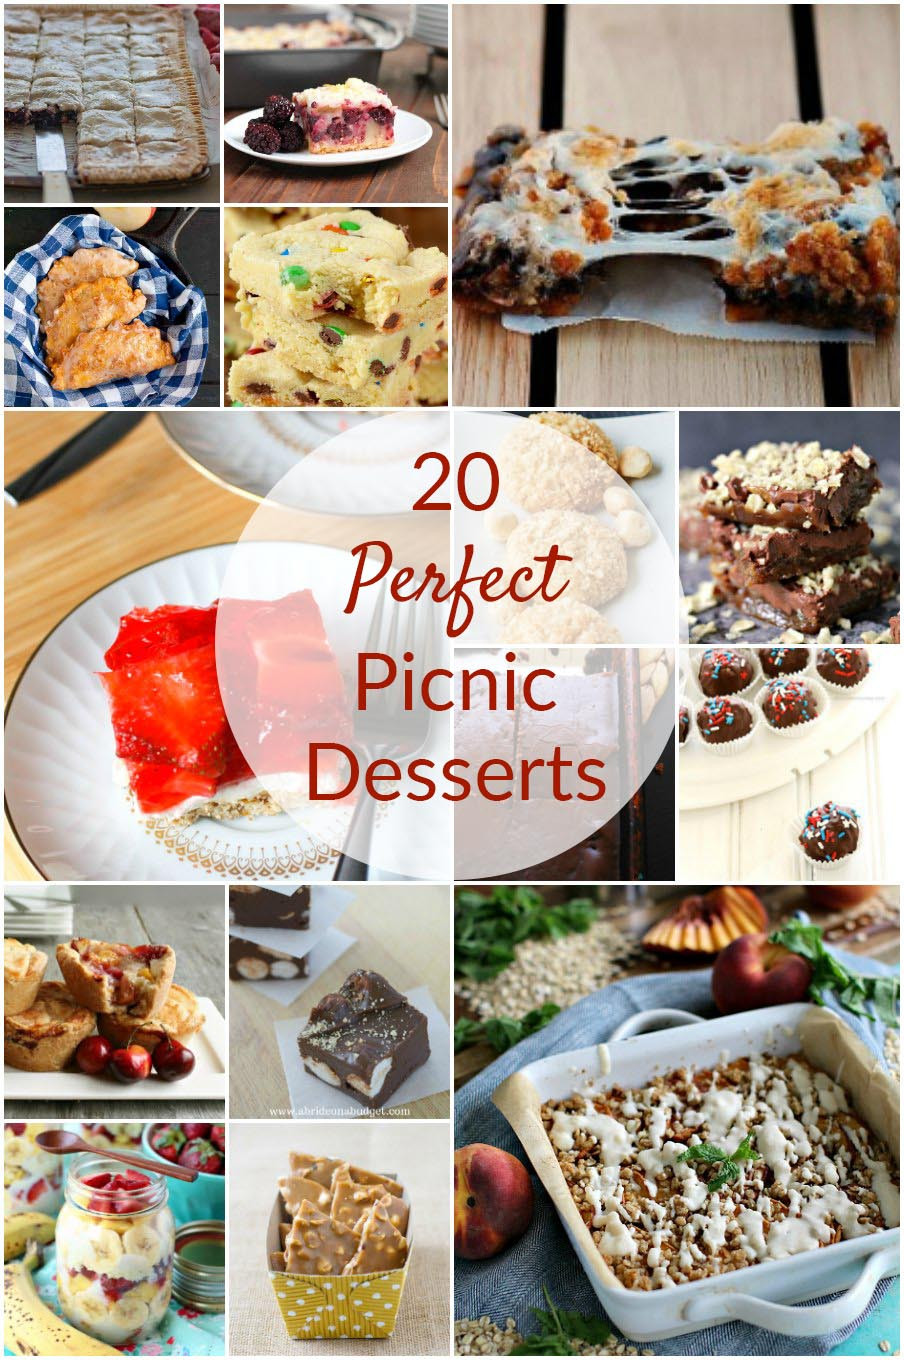 Desserts For Picnic  20 Perfect Picnic Desserts Round Up by The Redhead Baker